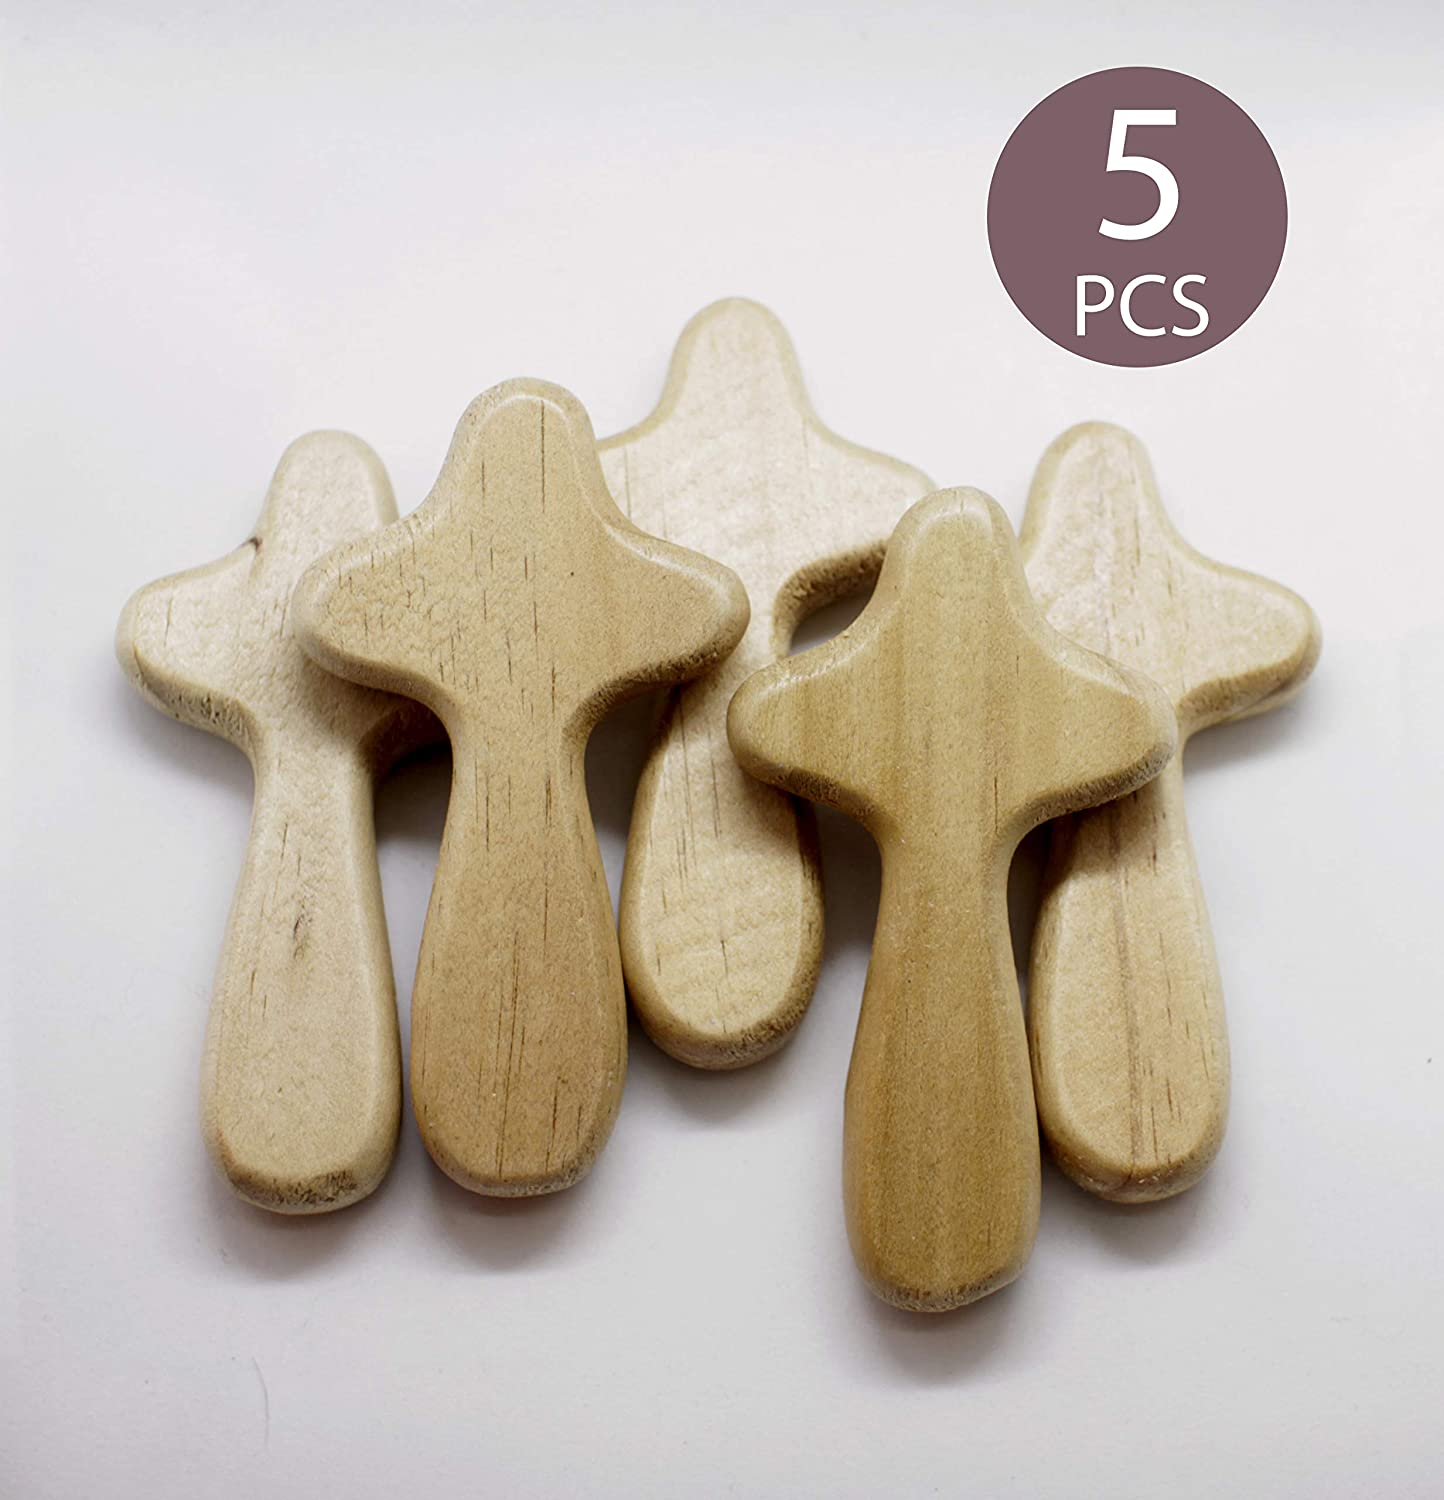 Waymaker Unfinished Wood Palm Cross - 5 Pack Crosses, 2.1 x 4 x 0.6-Inch Palm Cross for DIY Craft, Religious Home Decoration (Beech)